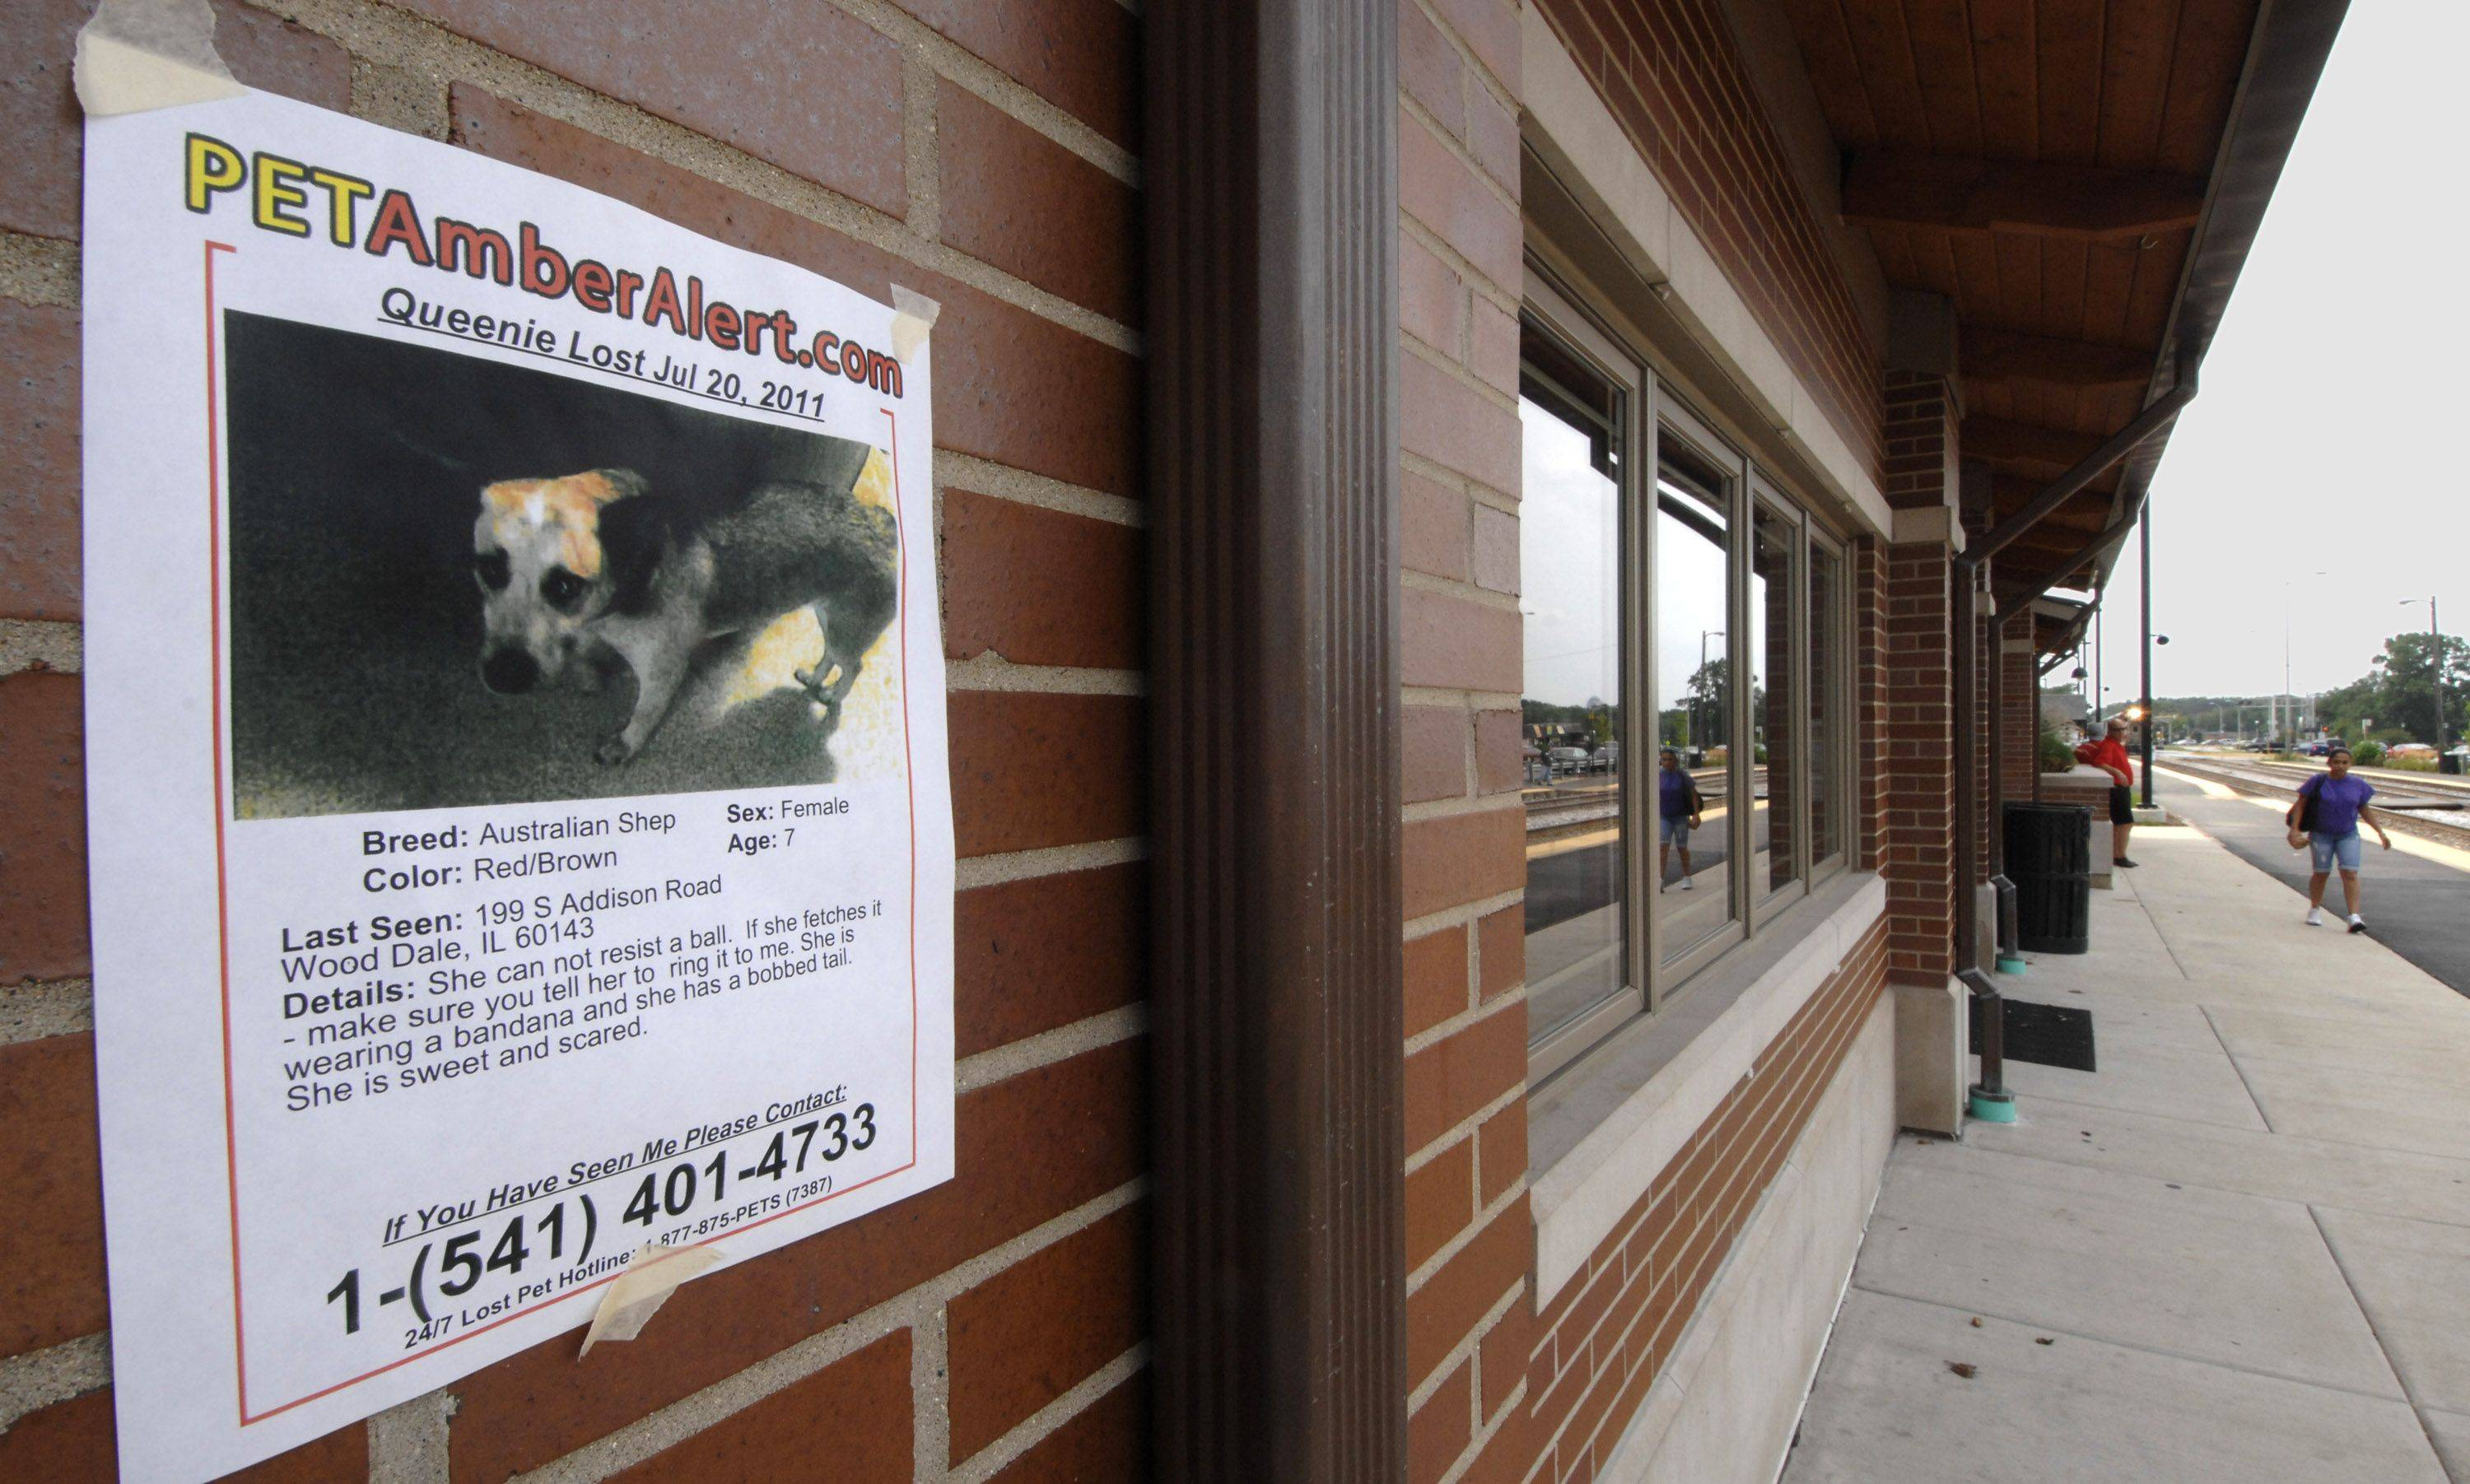 Flyers are on display in Wood Dale at the train station and at other locations to encourage people to be on the lookout for Queenie, an Australian Shepherd dog who got loose from her owner in July.